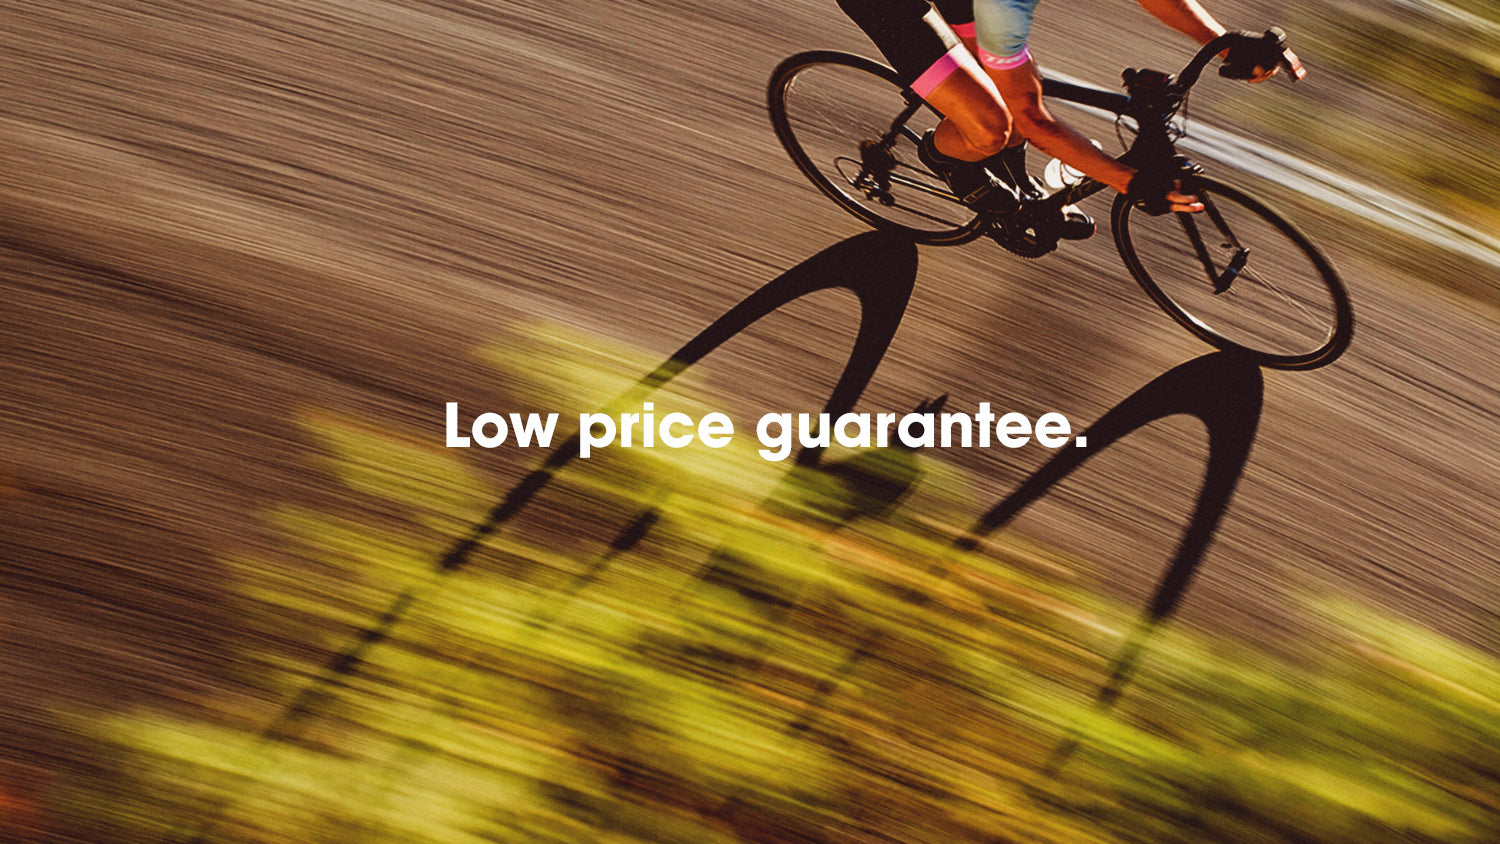 Trek Bicycle Tustin Low Price Guarantee